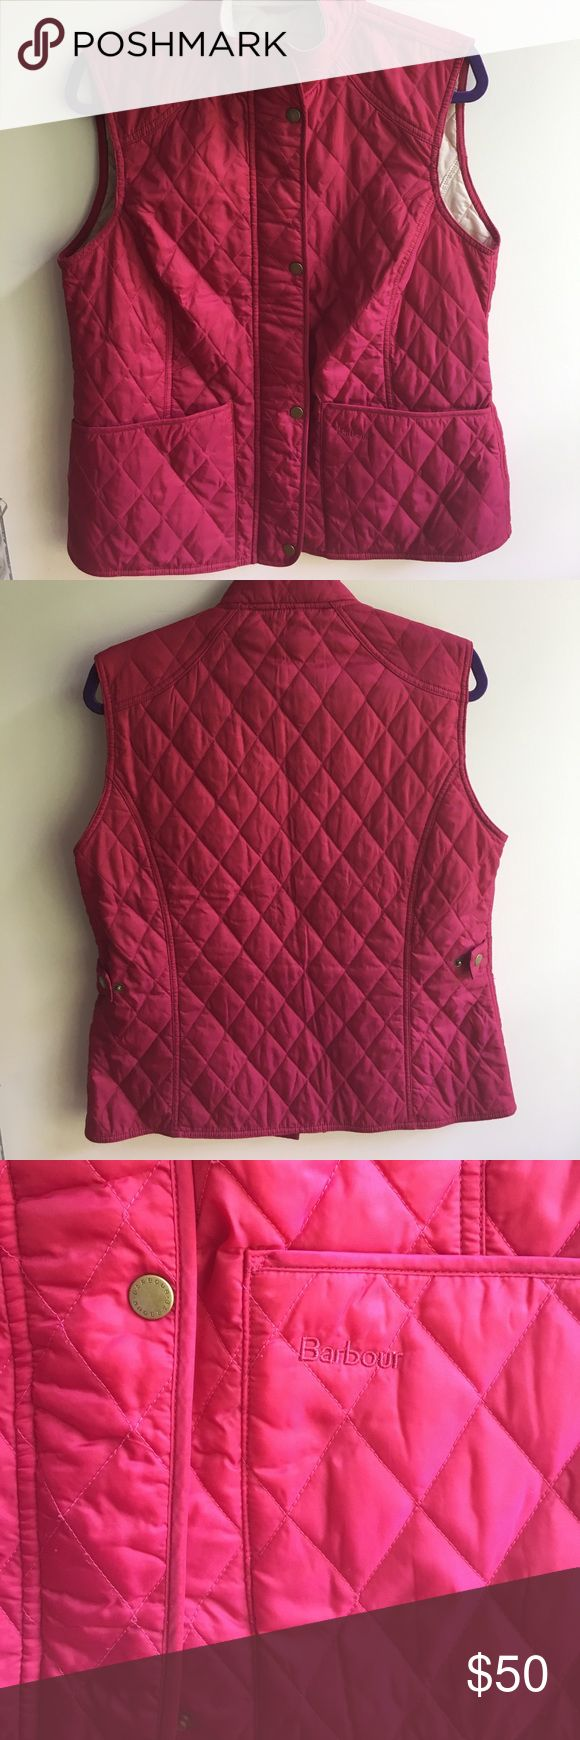 """Barbour Liddesdale Gilet Vest Lightweight, color-contrast, quilted vest with adjustable side tabs to shape the fit. 24"""" length, front two-way zip closure with outer snap placket, front pockets, interior zip pocket, Raspberry pink color. Barbour Jackets & Coats Vests"""